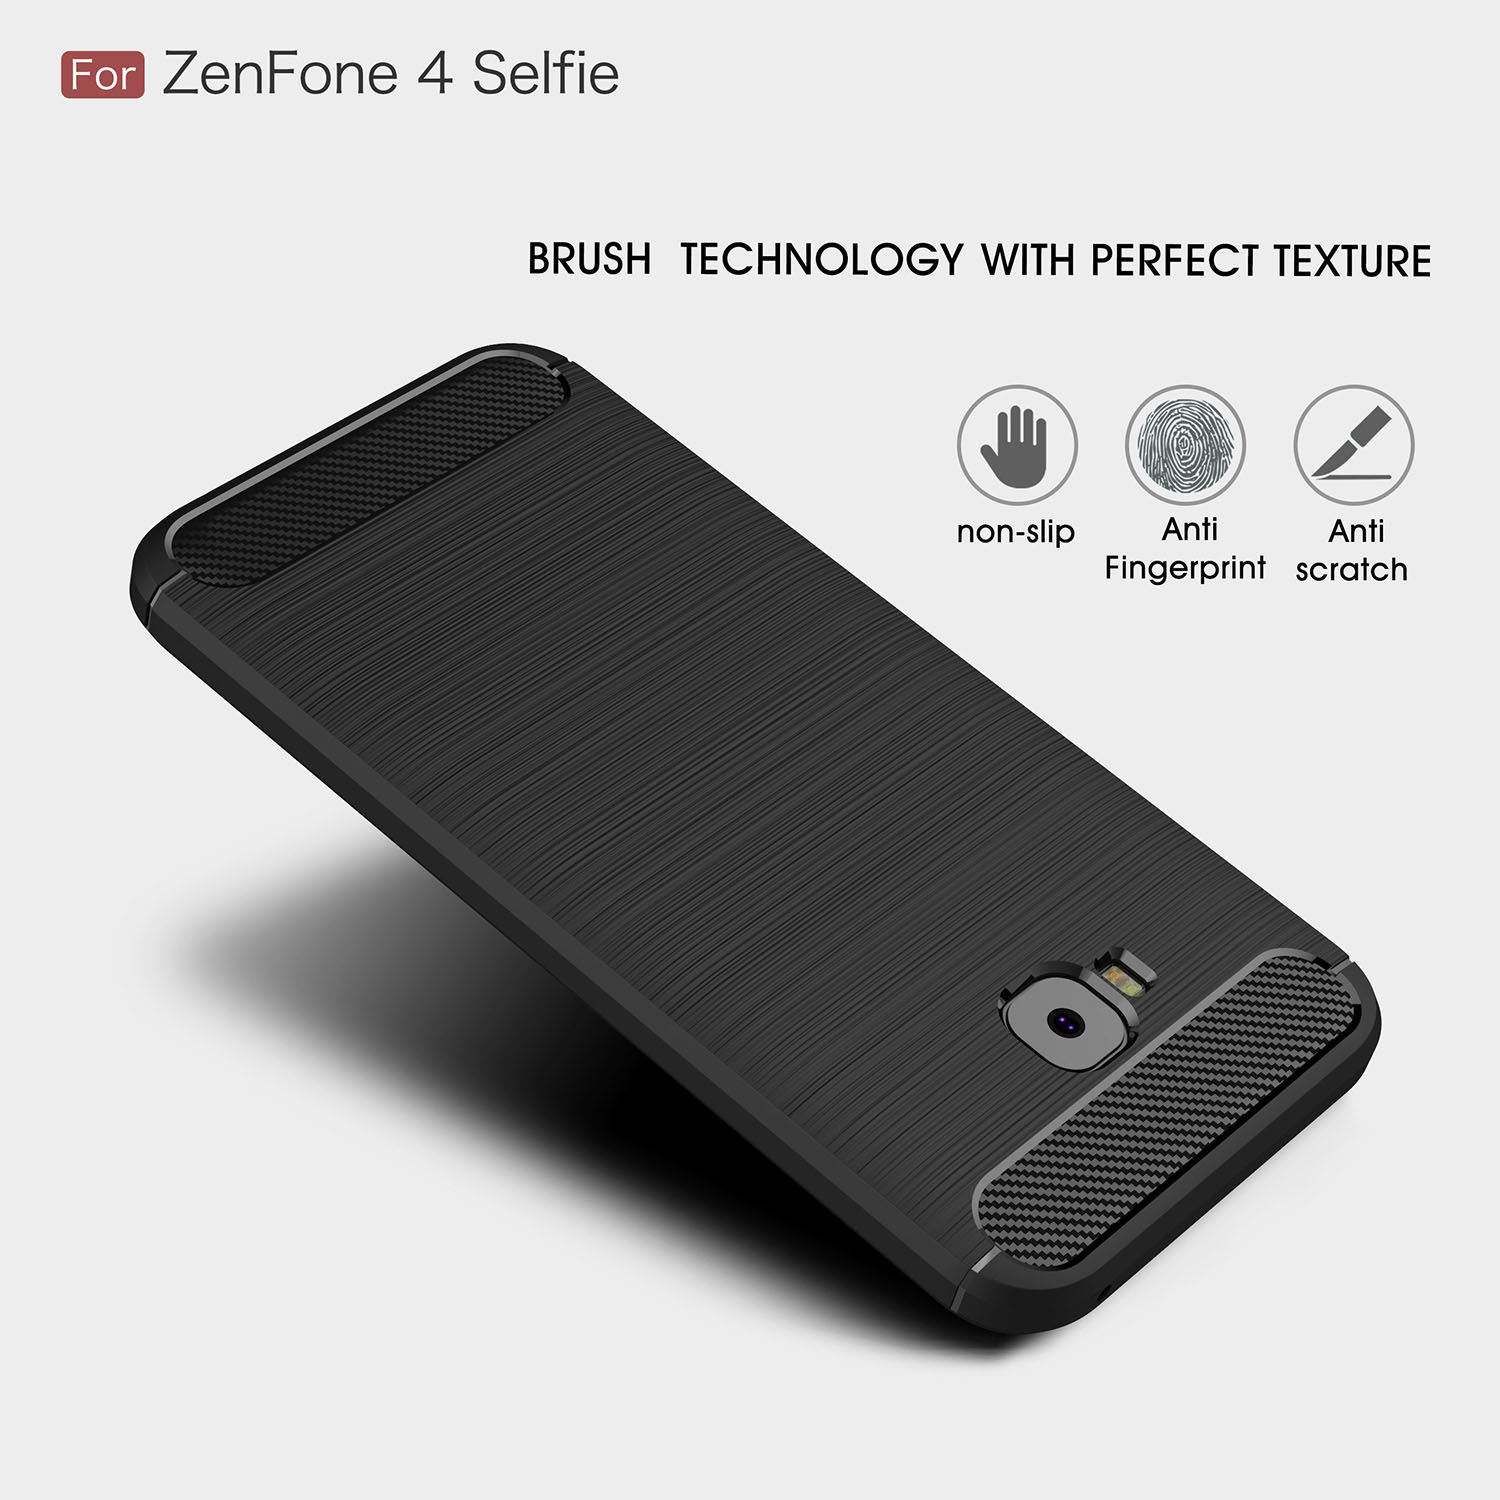 best service b7ec8 23b86 US $2.59 30% OFF|silicon Soft Case Cover For ASUS ZenFone 4 Selfie ZD552KL  Carbon Fiber TPU Back cover ZenFone4 Selfie Pro Shockproof Phone shell-in  ...